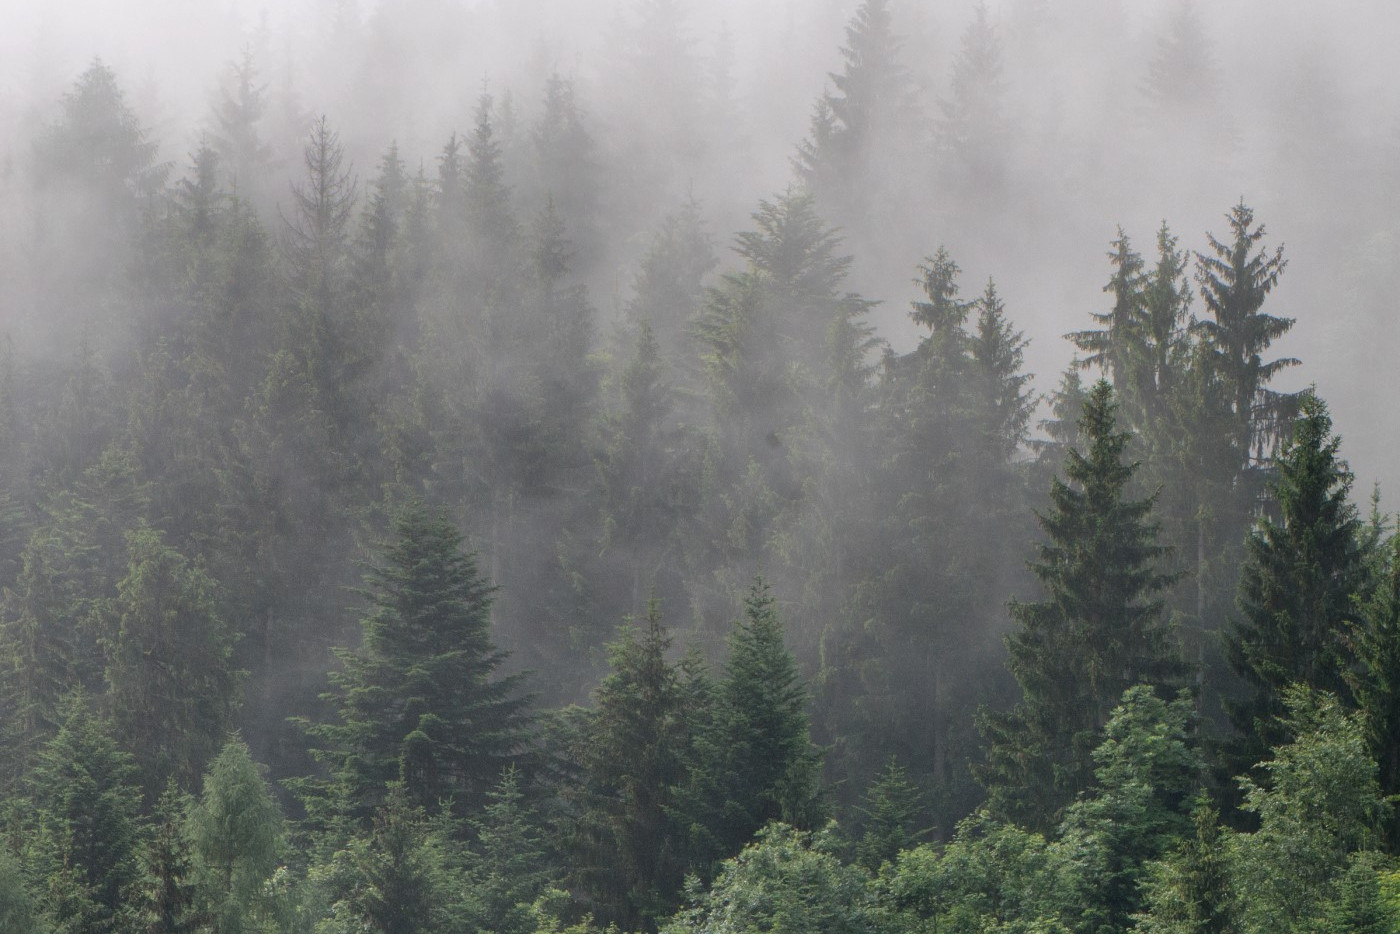 Fog over a forest of trees